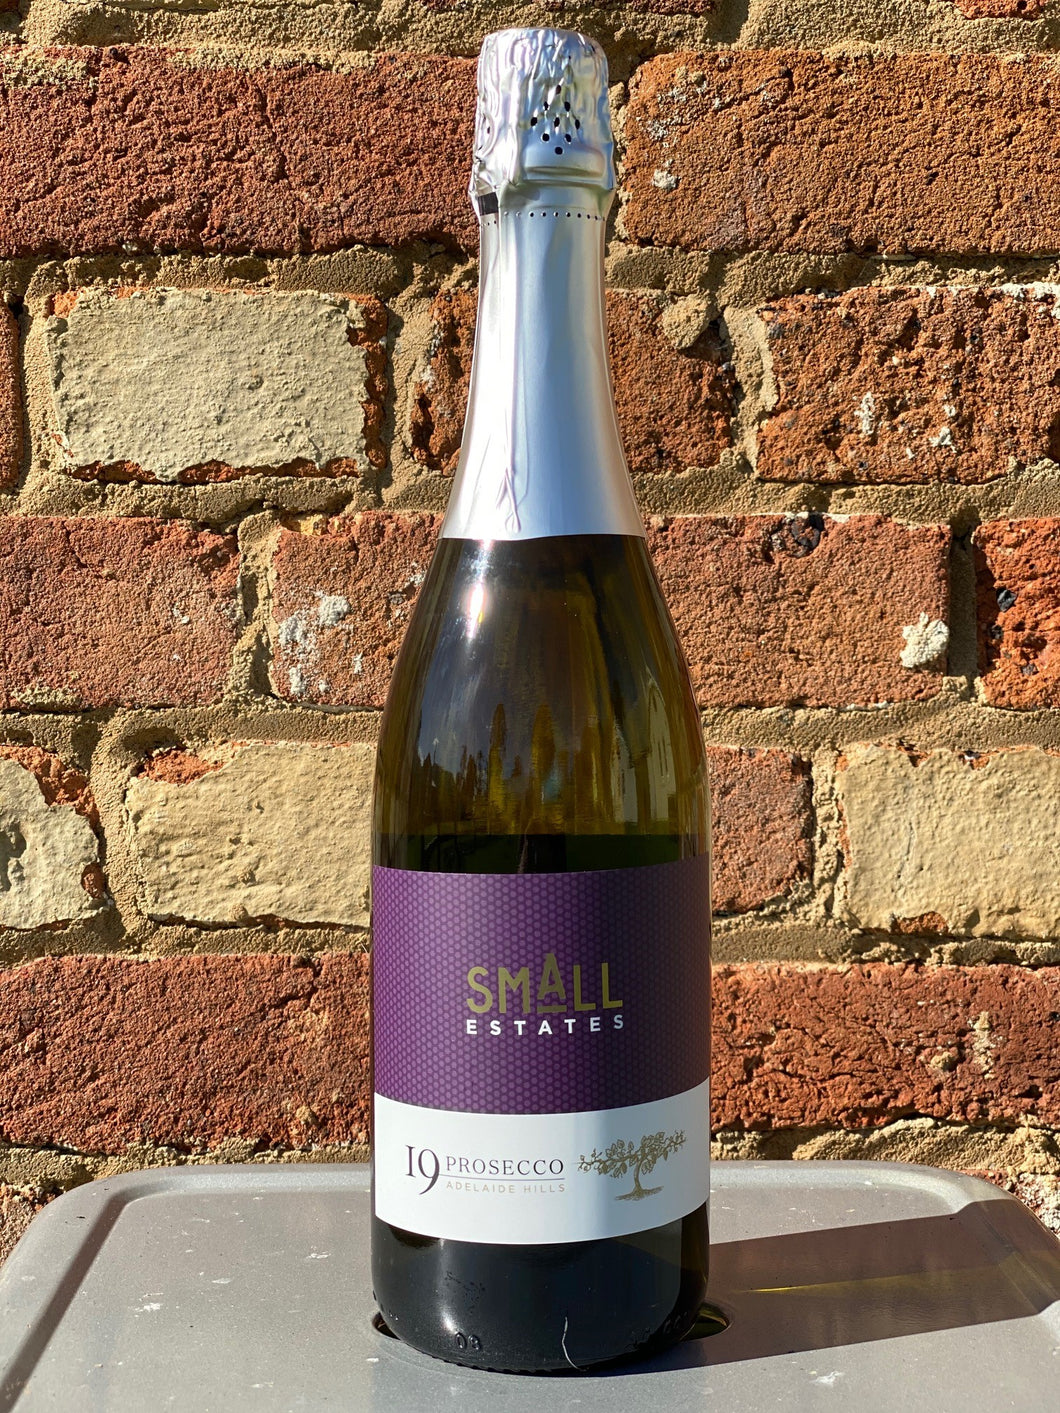 Small Estates Prosecco